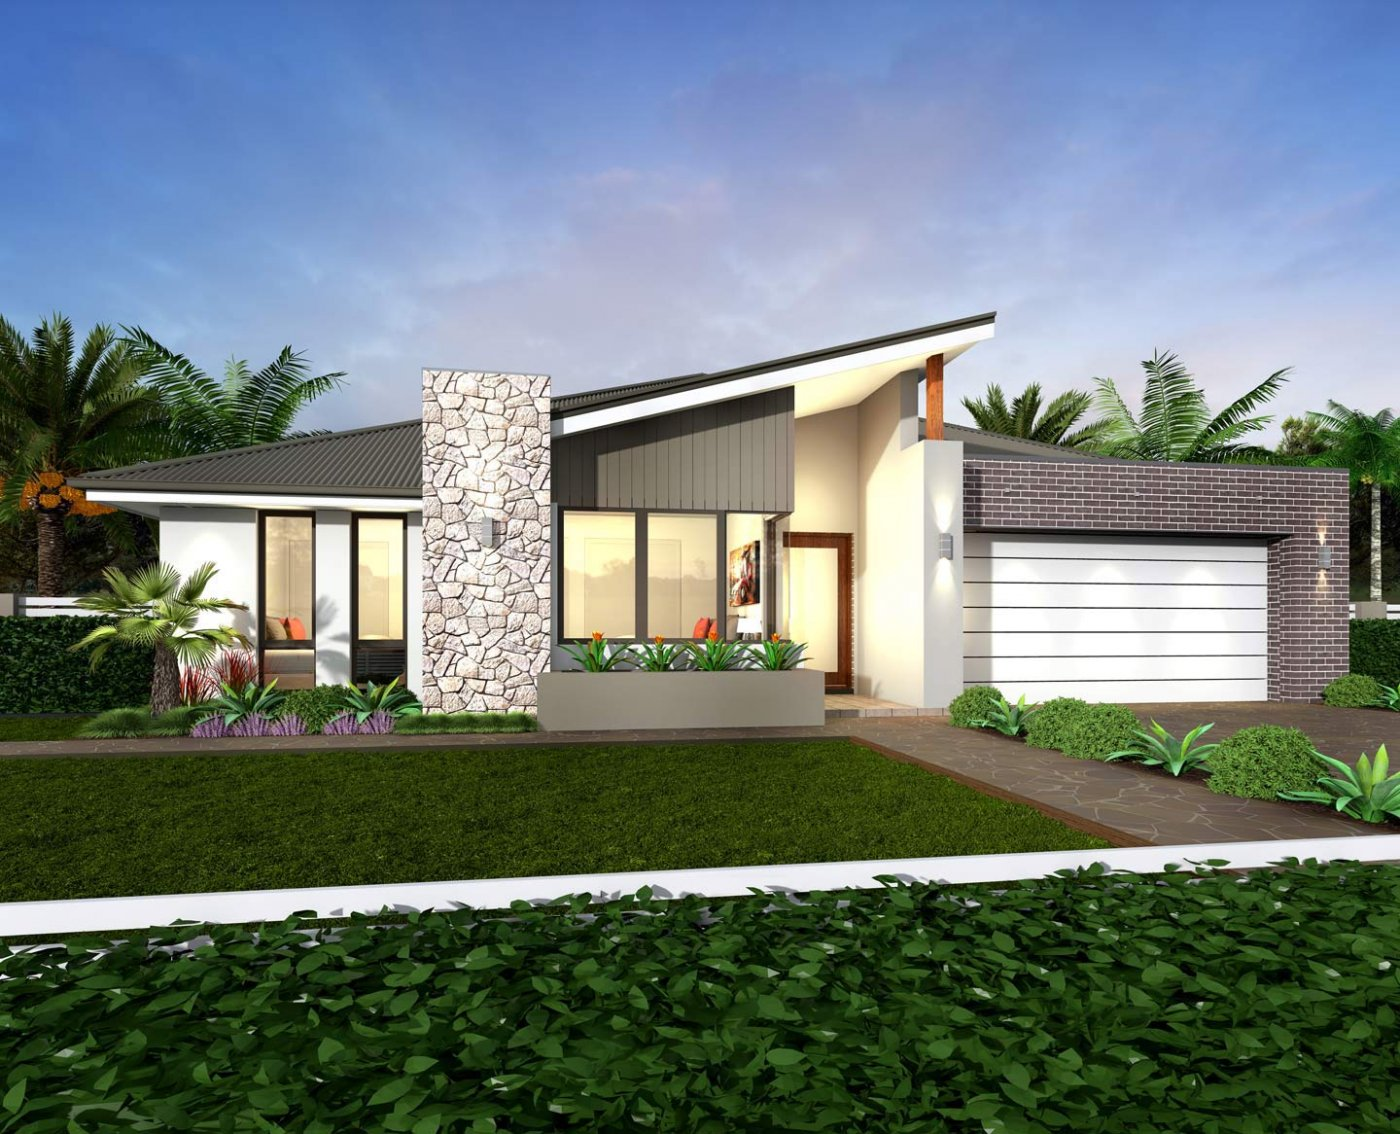 Single-story home comes with numerous benefits. So if you are considering to build one, your choice is one of the best! You may ask, what are the benefits of having a single-story house? Well, single-story homes are generally made for lower-maintenance living. Aside from this, this type of house maximizes the open plan living space because the staircase is not needed at all. Single story homes are considered to be affordable living homes because they are cheaper to build compared to two-story houses. Aside from the building and labor cost, style, functionality, and quality are the most important for homeowners when building a house. And all of these are present in a single-story home!  So if you are searching for a single-story house plans that are functional, and designed for your modern lifestyle, you can choose the following Australian house design. Floor plans are included for you to see what is inside of these new build house designs.  These houses are designed with the latest and emerging trends where you can choose from functional and convenient single-story house plans to single story homes that will suit the needs of your family. Houses that are beautifully designed to have open plan living regardless of the size of your home lot!